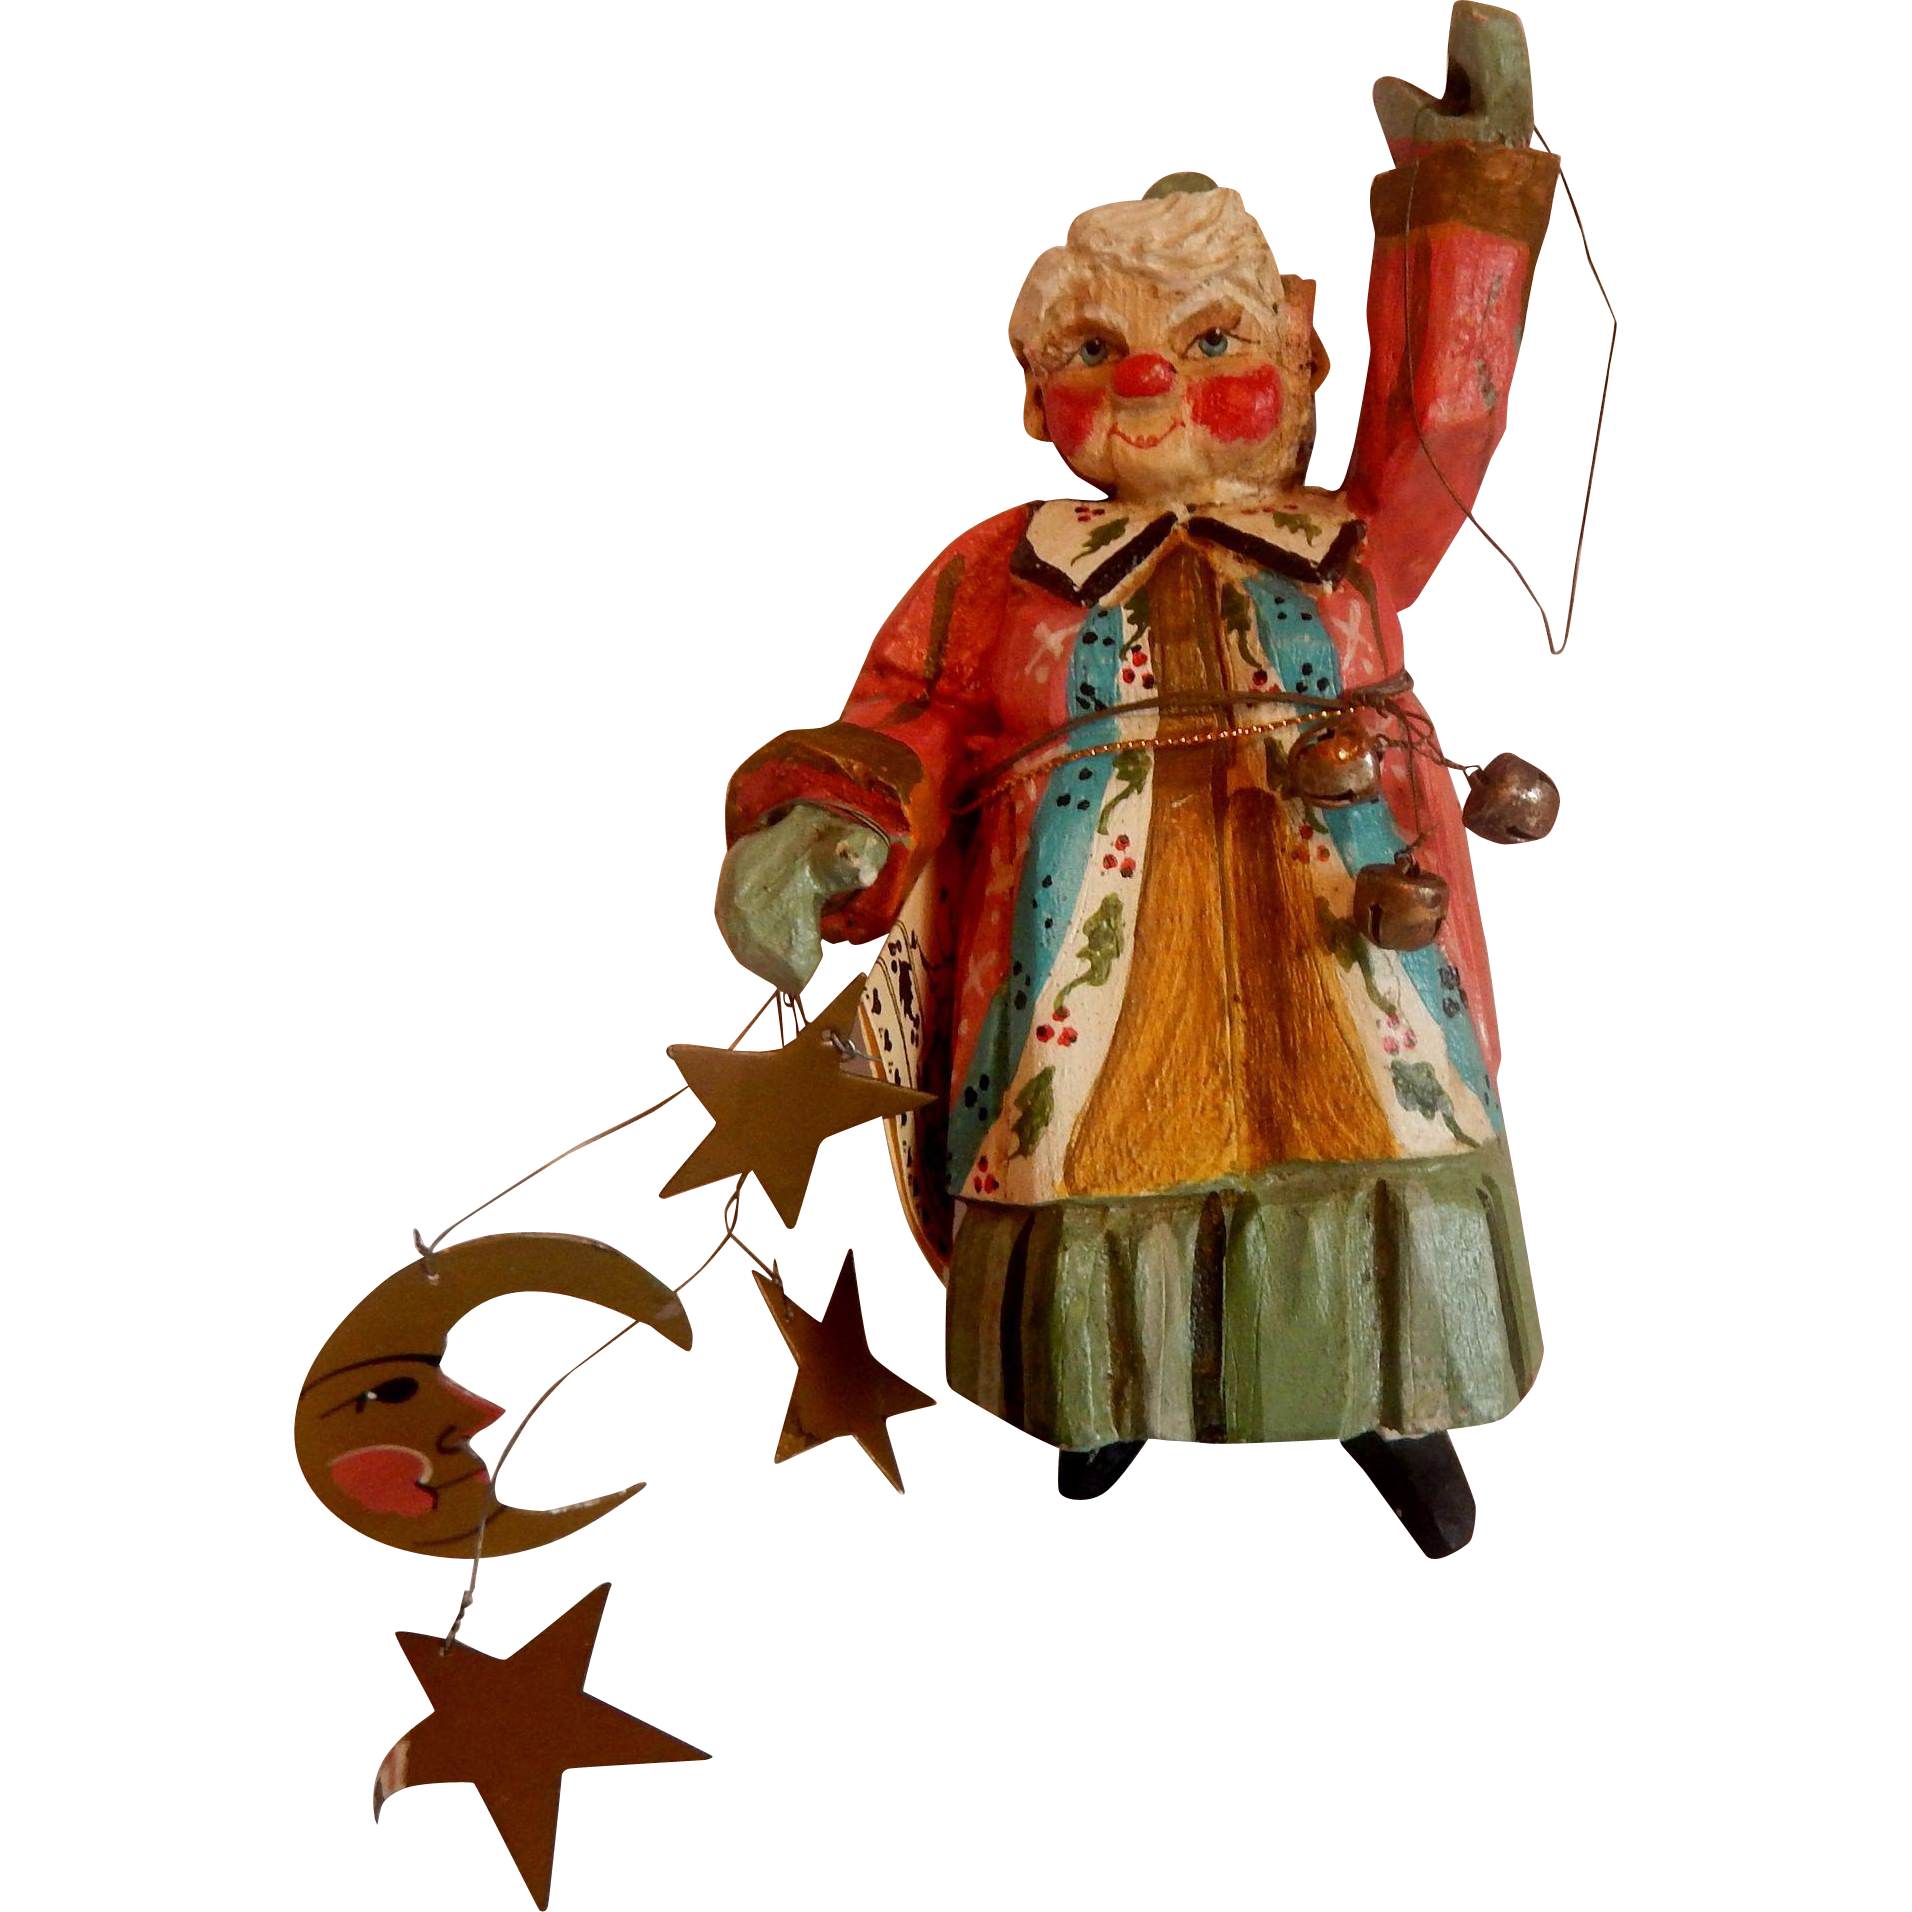 House Of Hatten Enchanted Forest Lady Elf Ornament